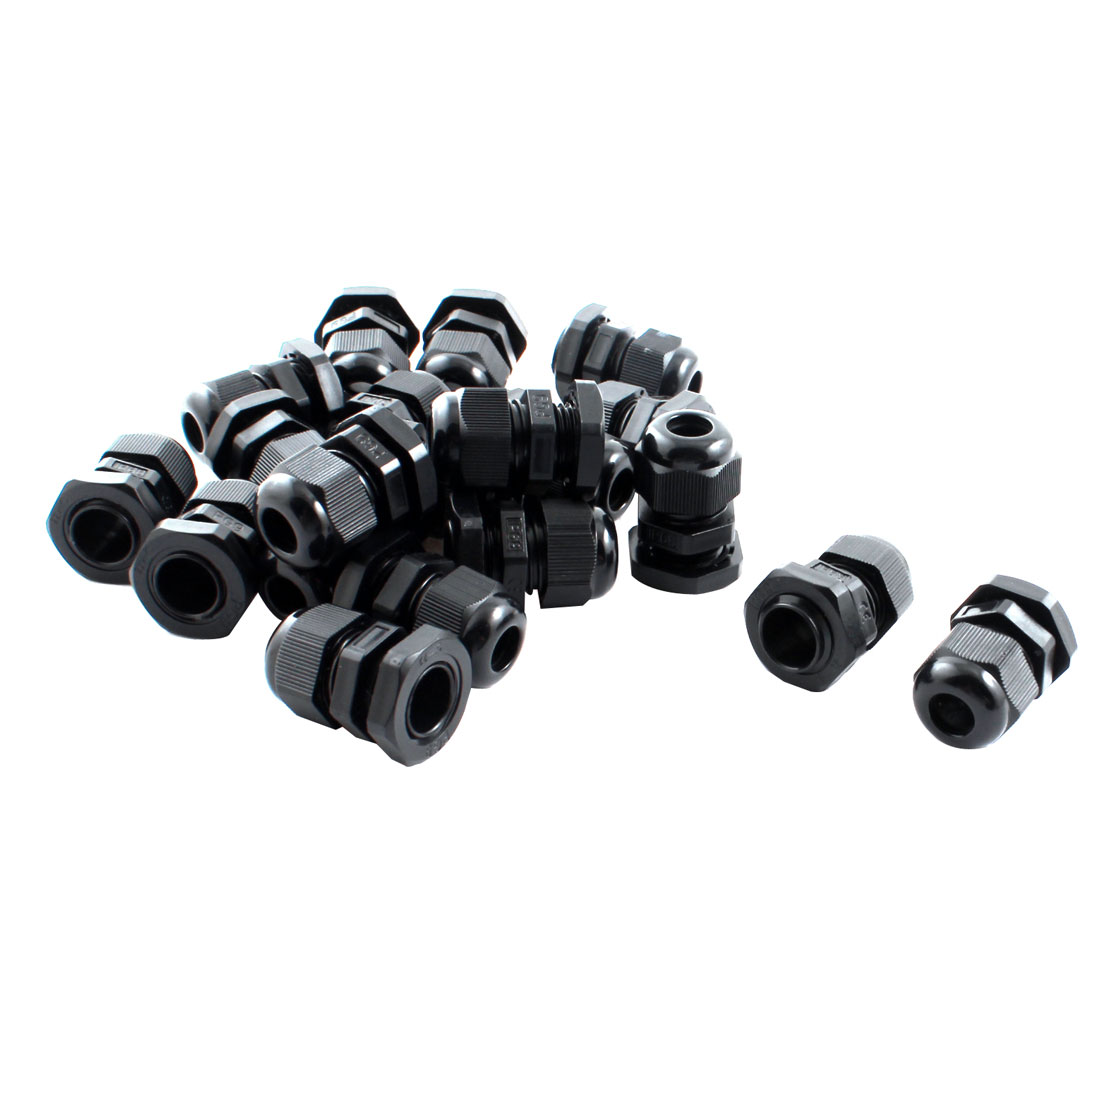 20Pcs Waterproof Fixing Gland Connector PG9 for 4-8mm Dia Cable Wire